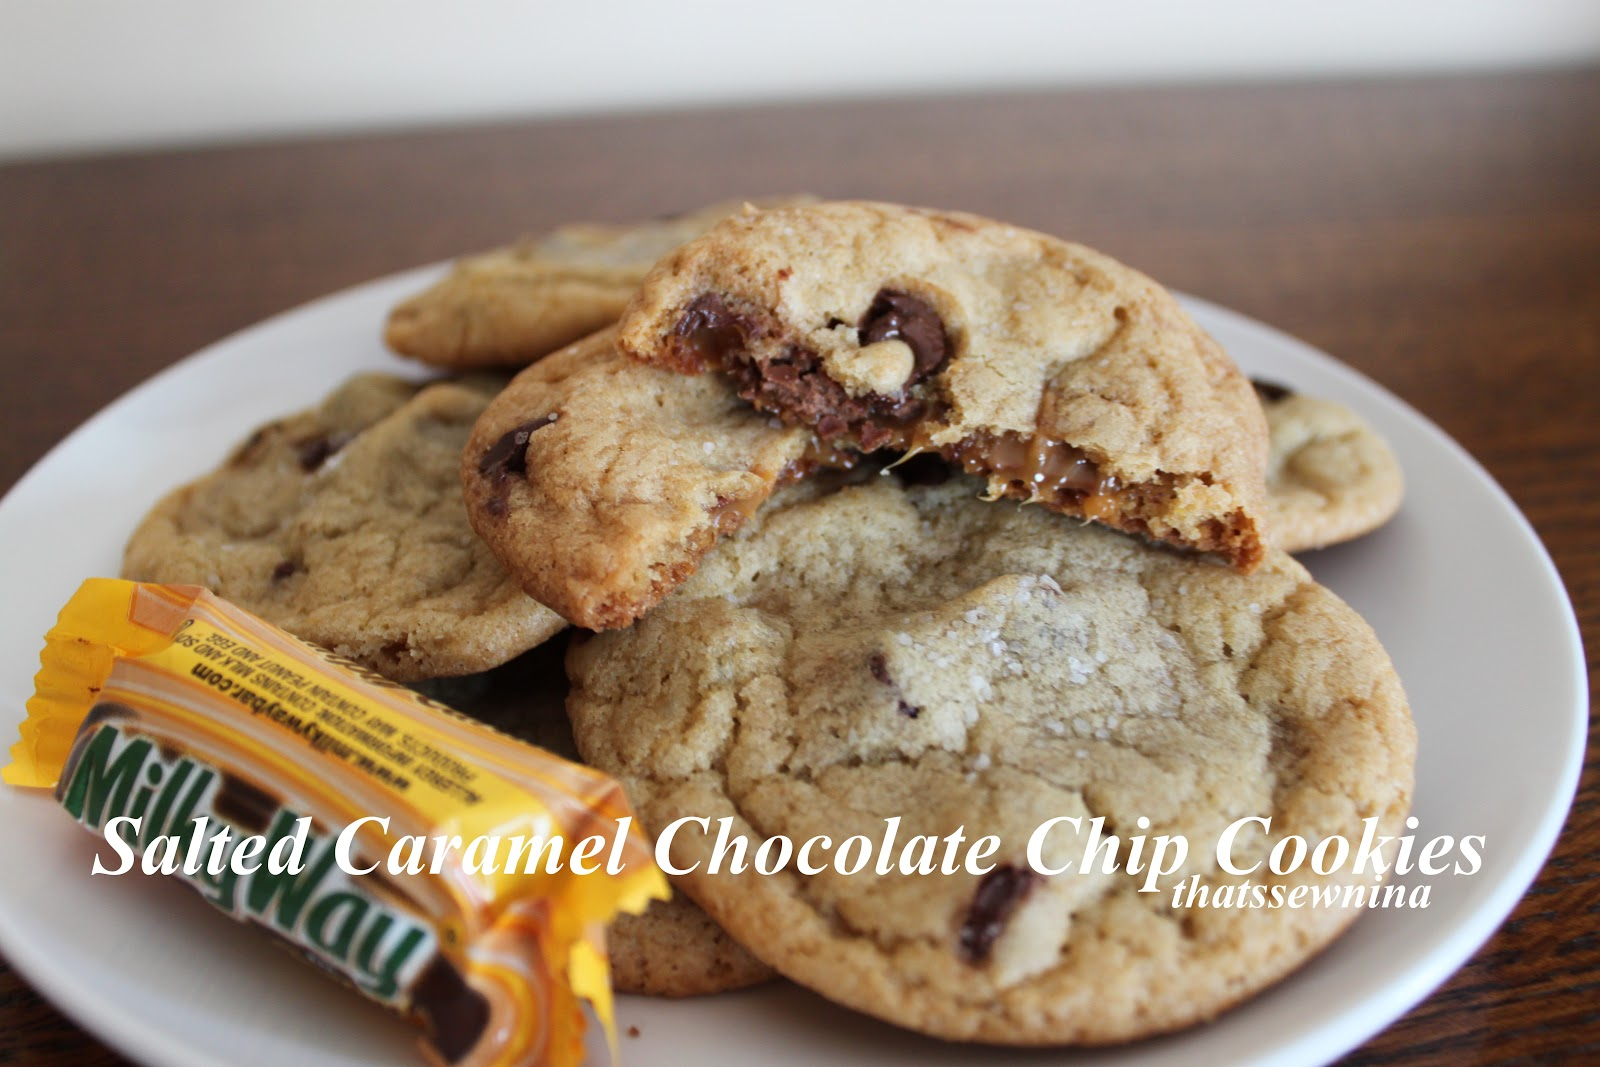 thatssewnina: PINSPIRED: Salted Caramel Chocolate Chip Cookies